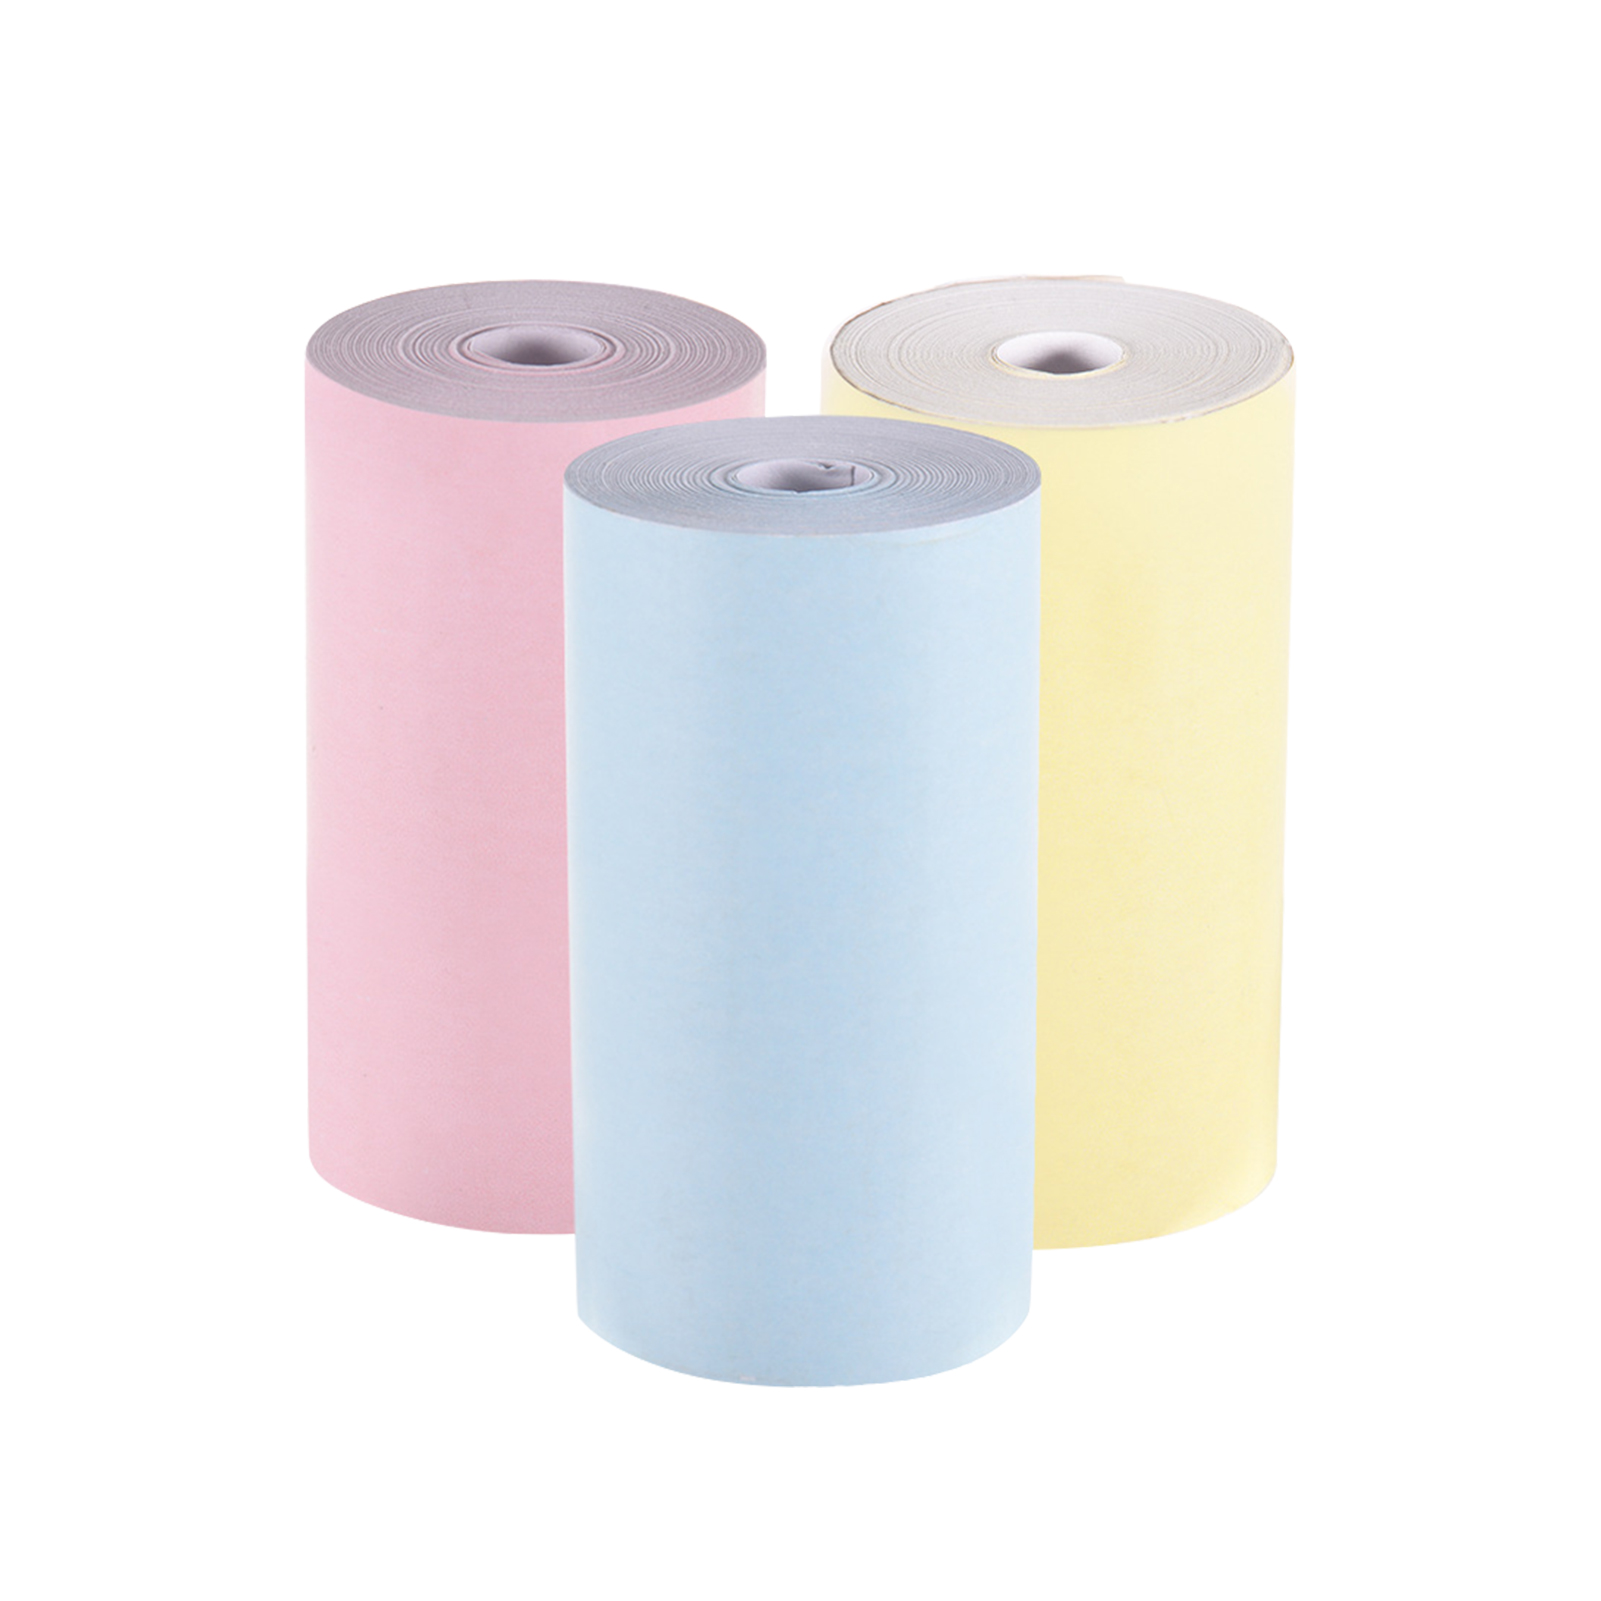 3colors/set Smooth Small Supermarket Printing Banks Mini Thermal Paper Portable Photo Printer Restaurant Solid 57x30mm Hotel